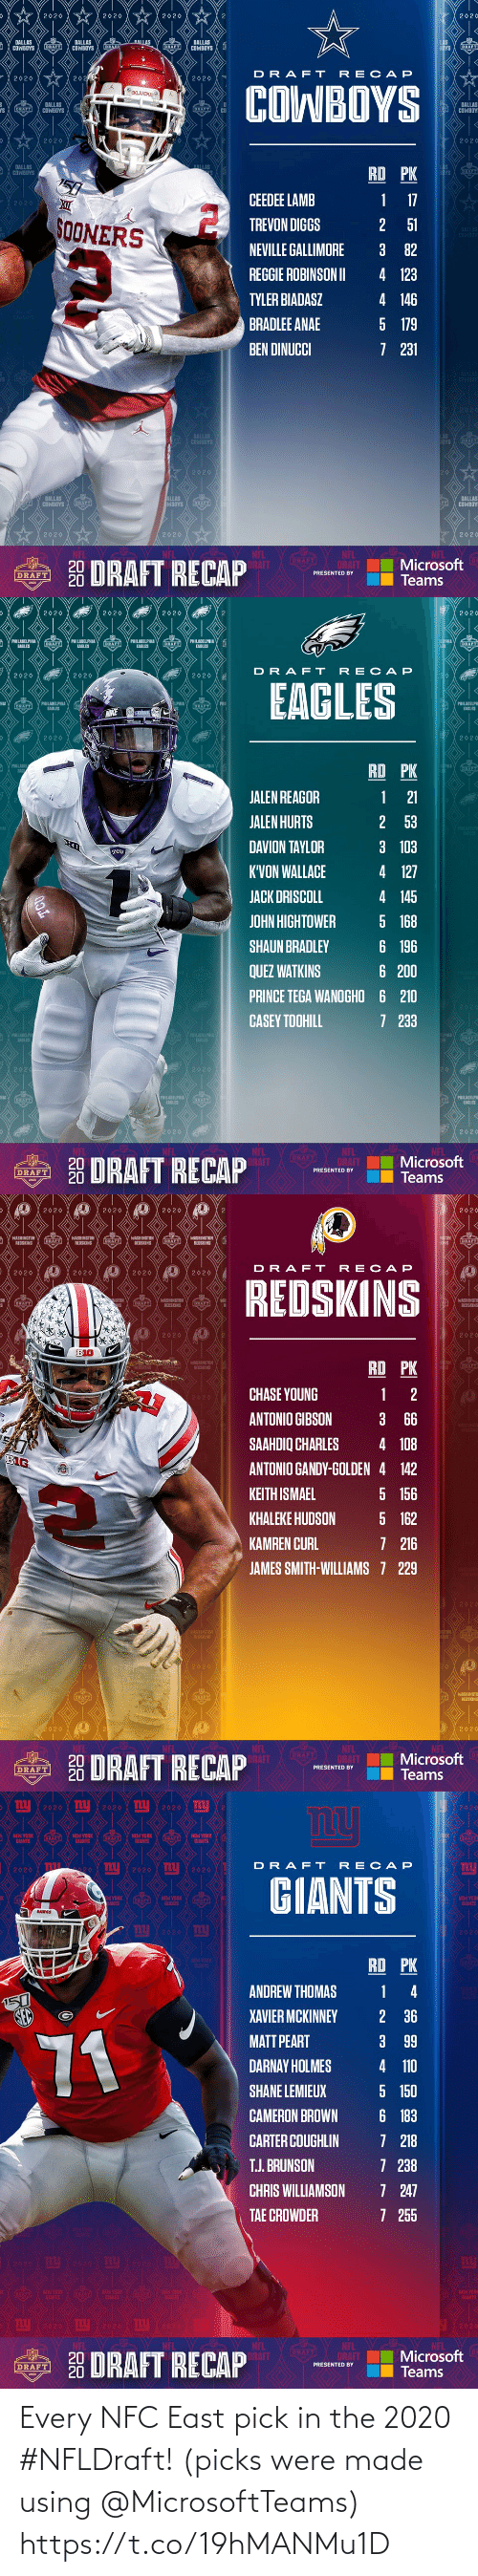 nfc east: Every NFC East pick in the 2020 #NFLDraft!  (picks were made using @MicrosoftTeams) https://t.co/19hMANMu1D